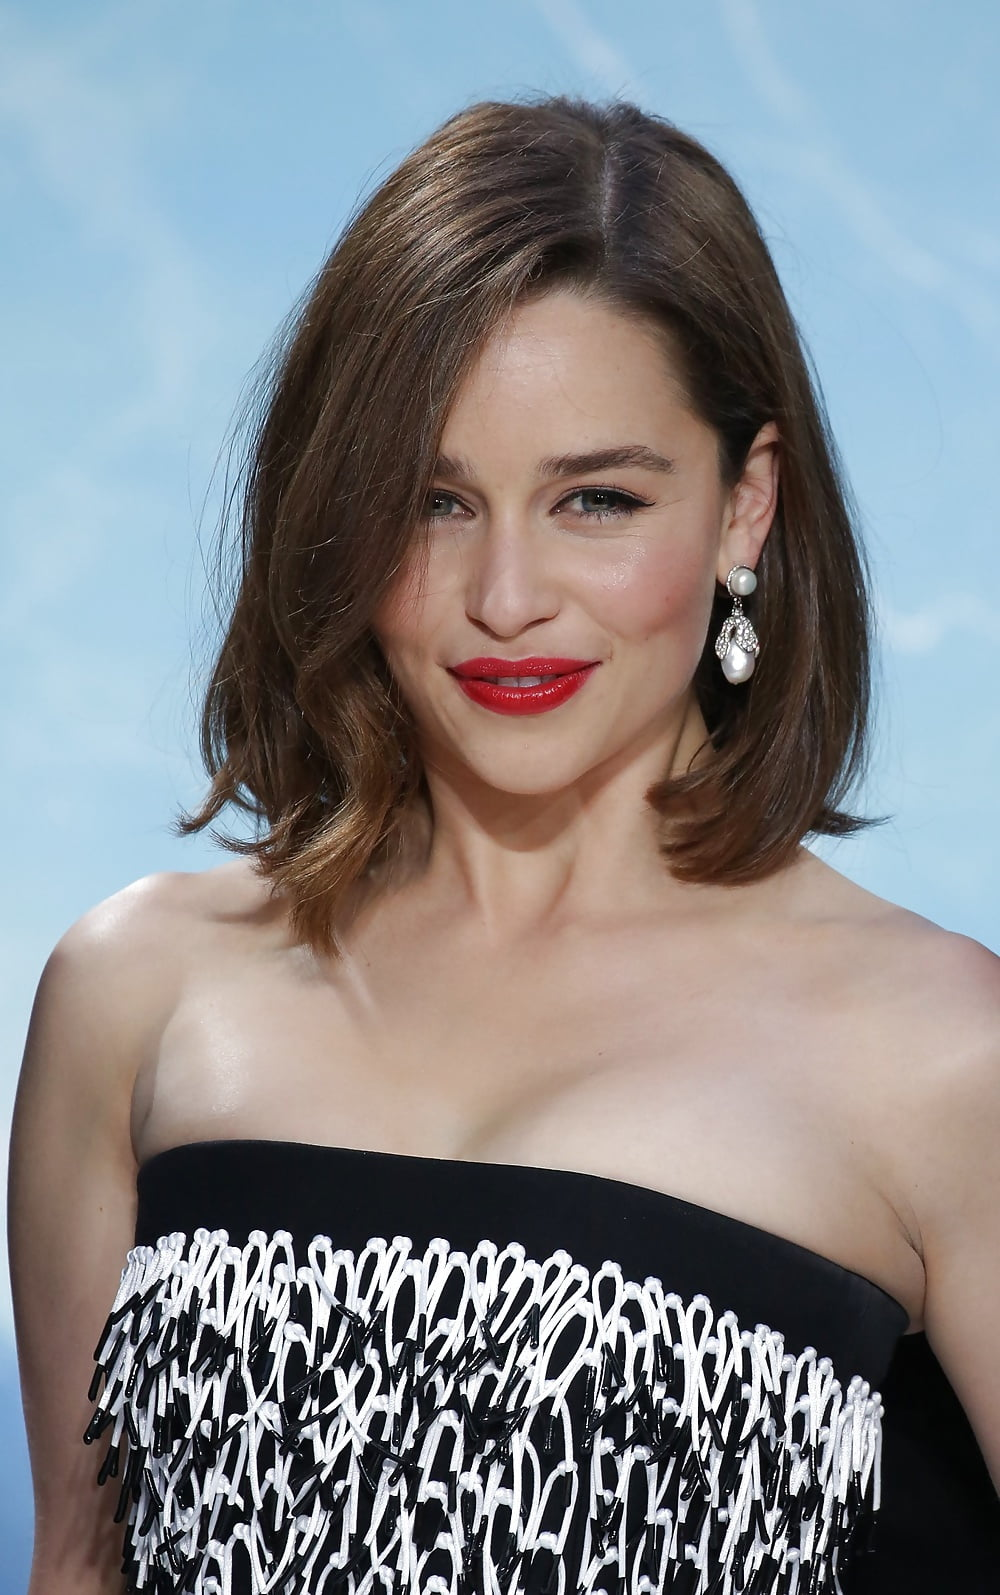 See and Save As sexy emilia clarke xx porn pict - Xhams